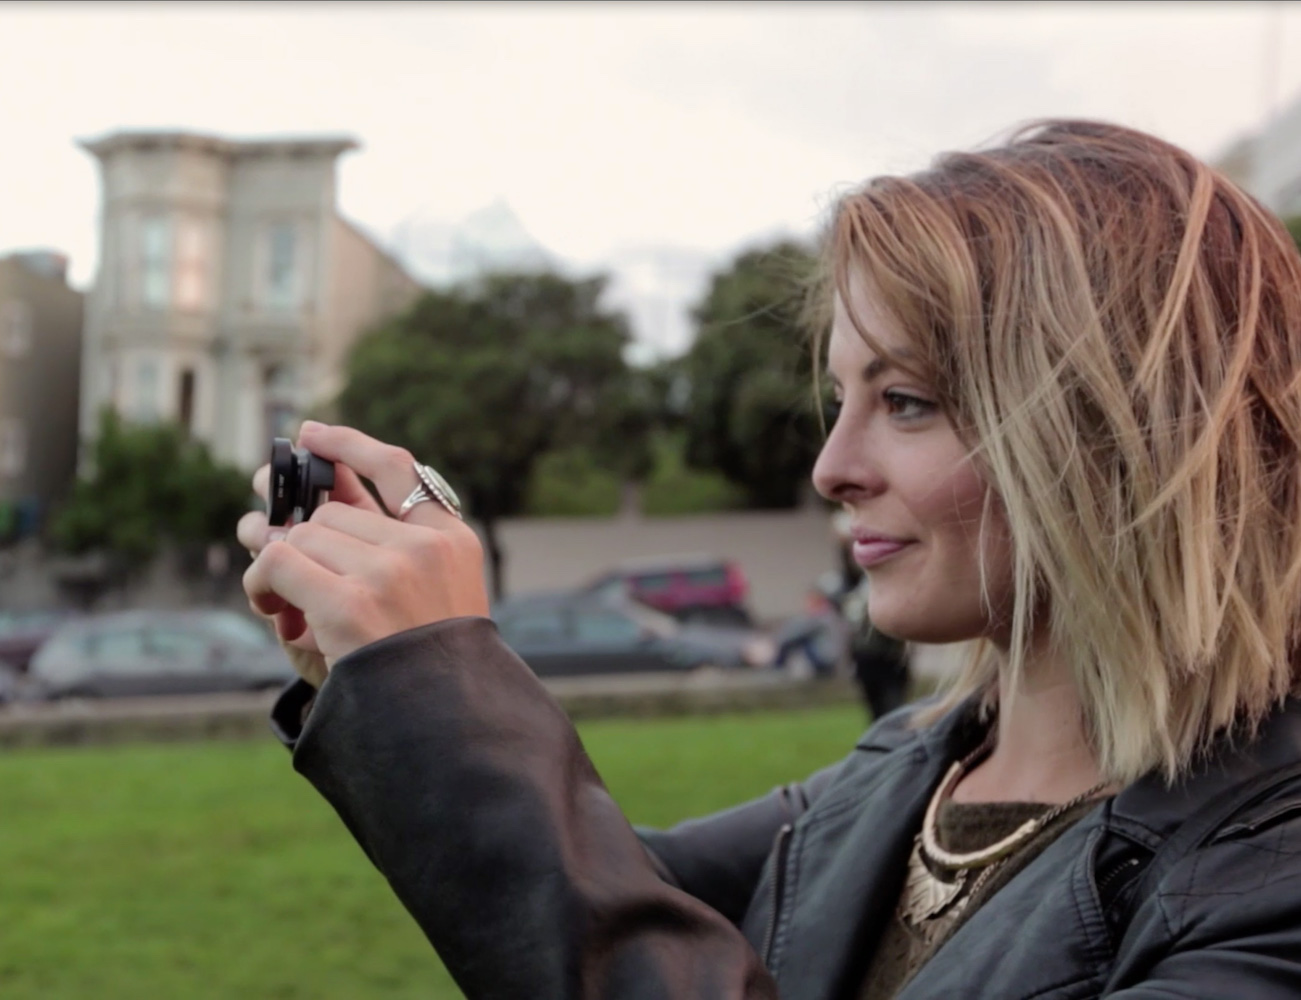 ExoLens – Professional Grade Photography Gear for Your iPhone